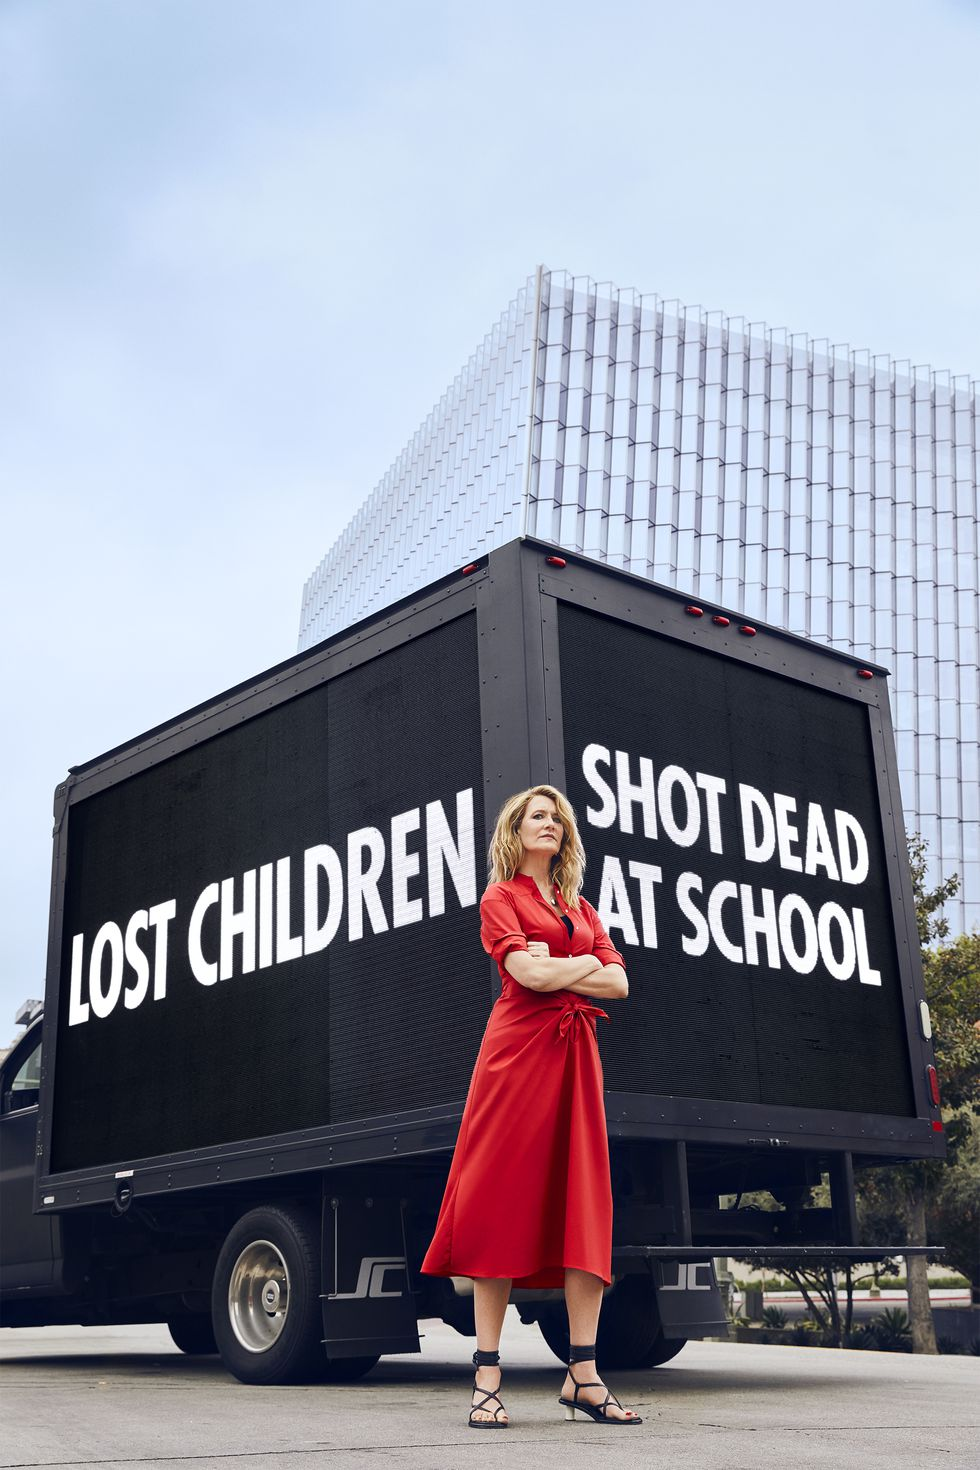 "SARAH CHADWICK, LAURA DERN, & DIANE KRUGER FIGHT FOR GUN VIOLENCE PREVENTION - ""PUBLIC SAFETY IS NOT A PRIVILEGE"""